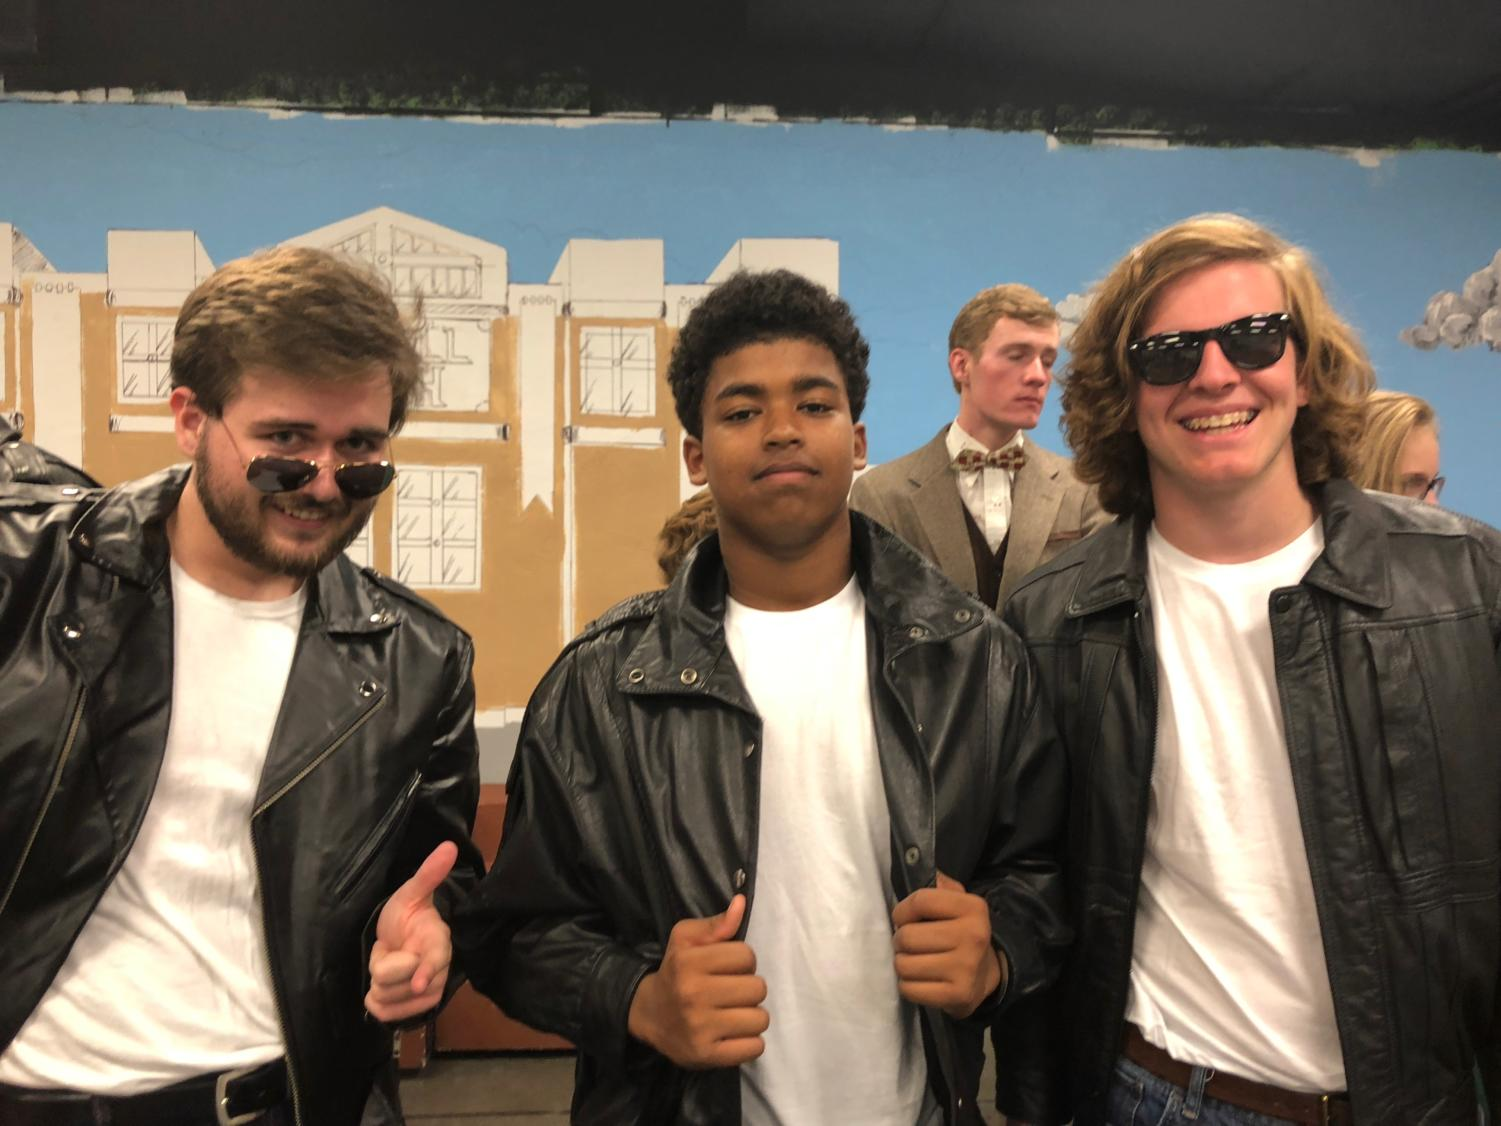 A Grease rehearsal from the 2018 Spring musical. Pictured: Charlie Price (18'), Trystan Brown ('20), and Cam Vining ('20).